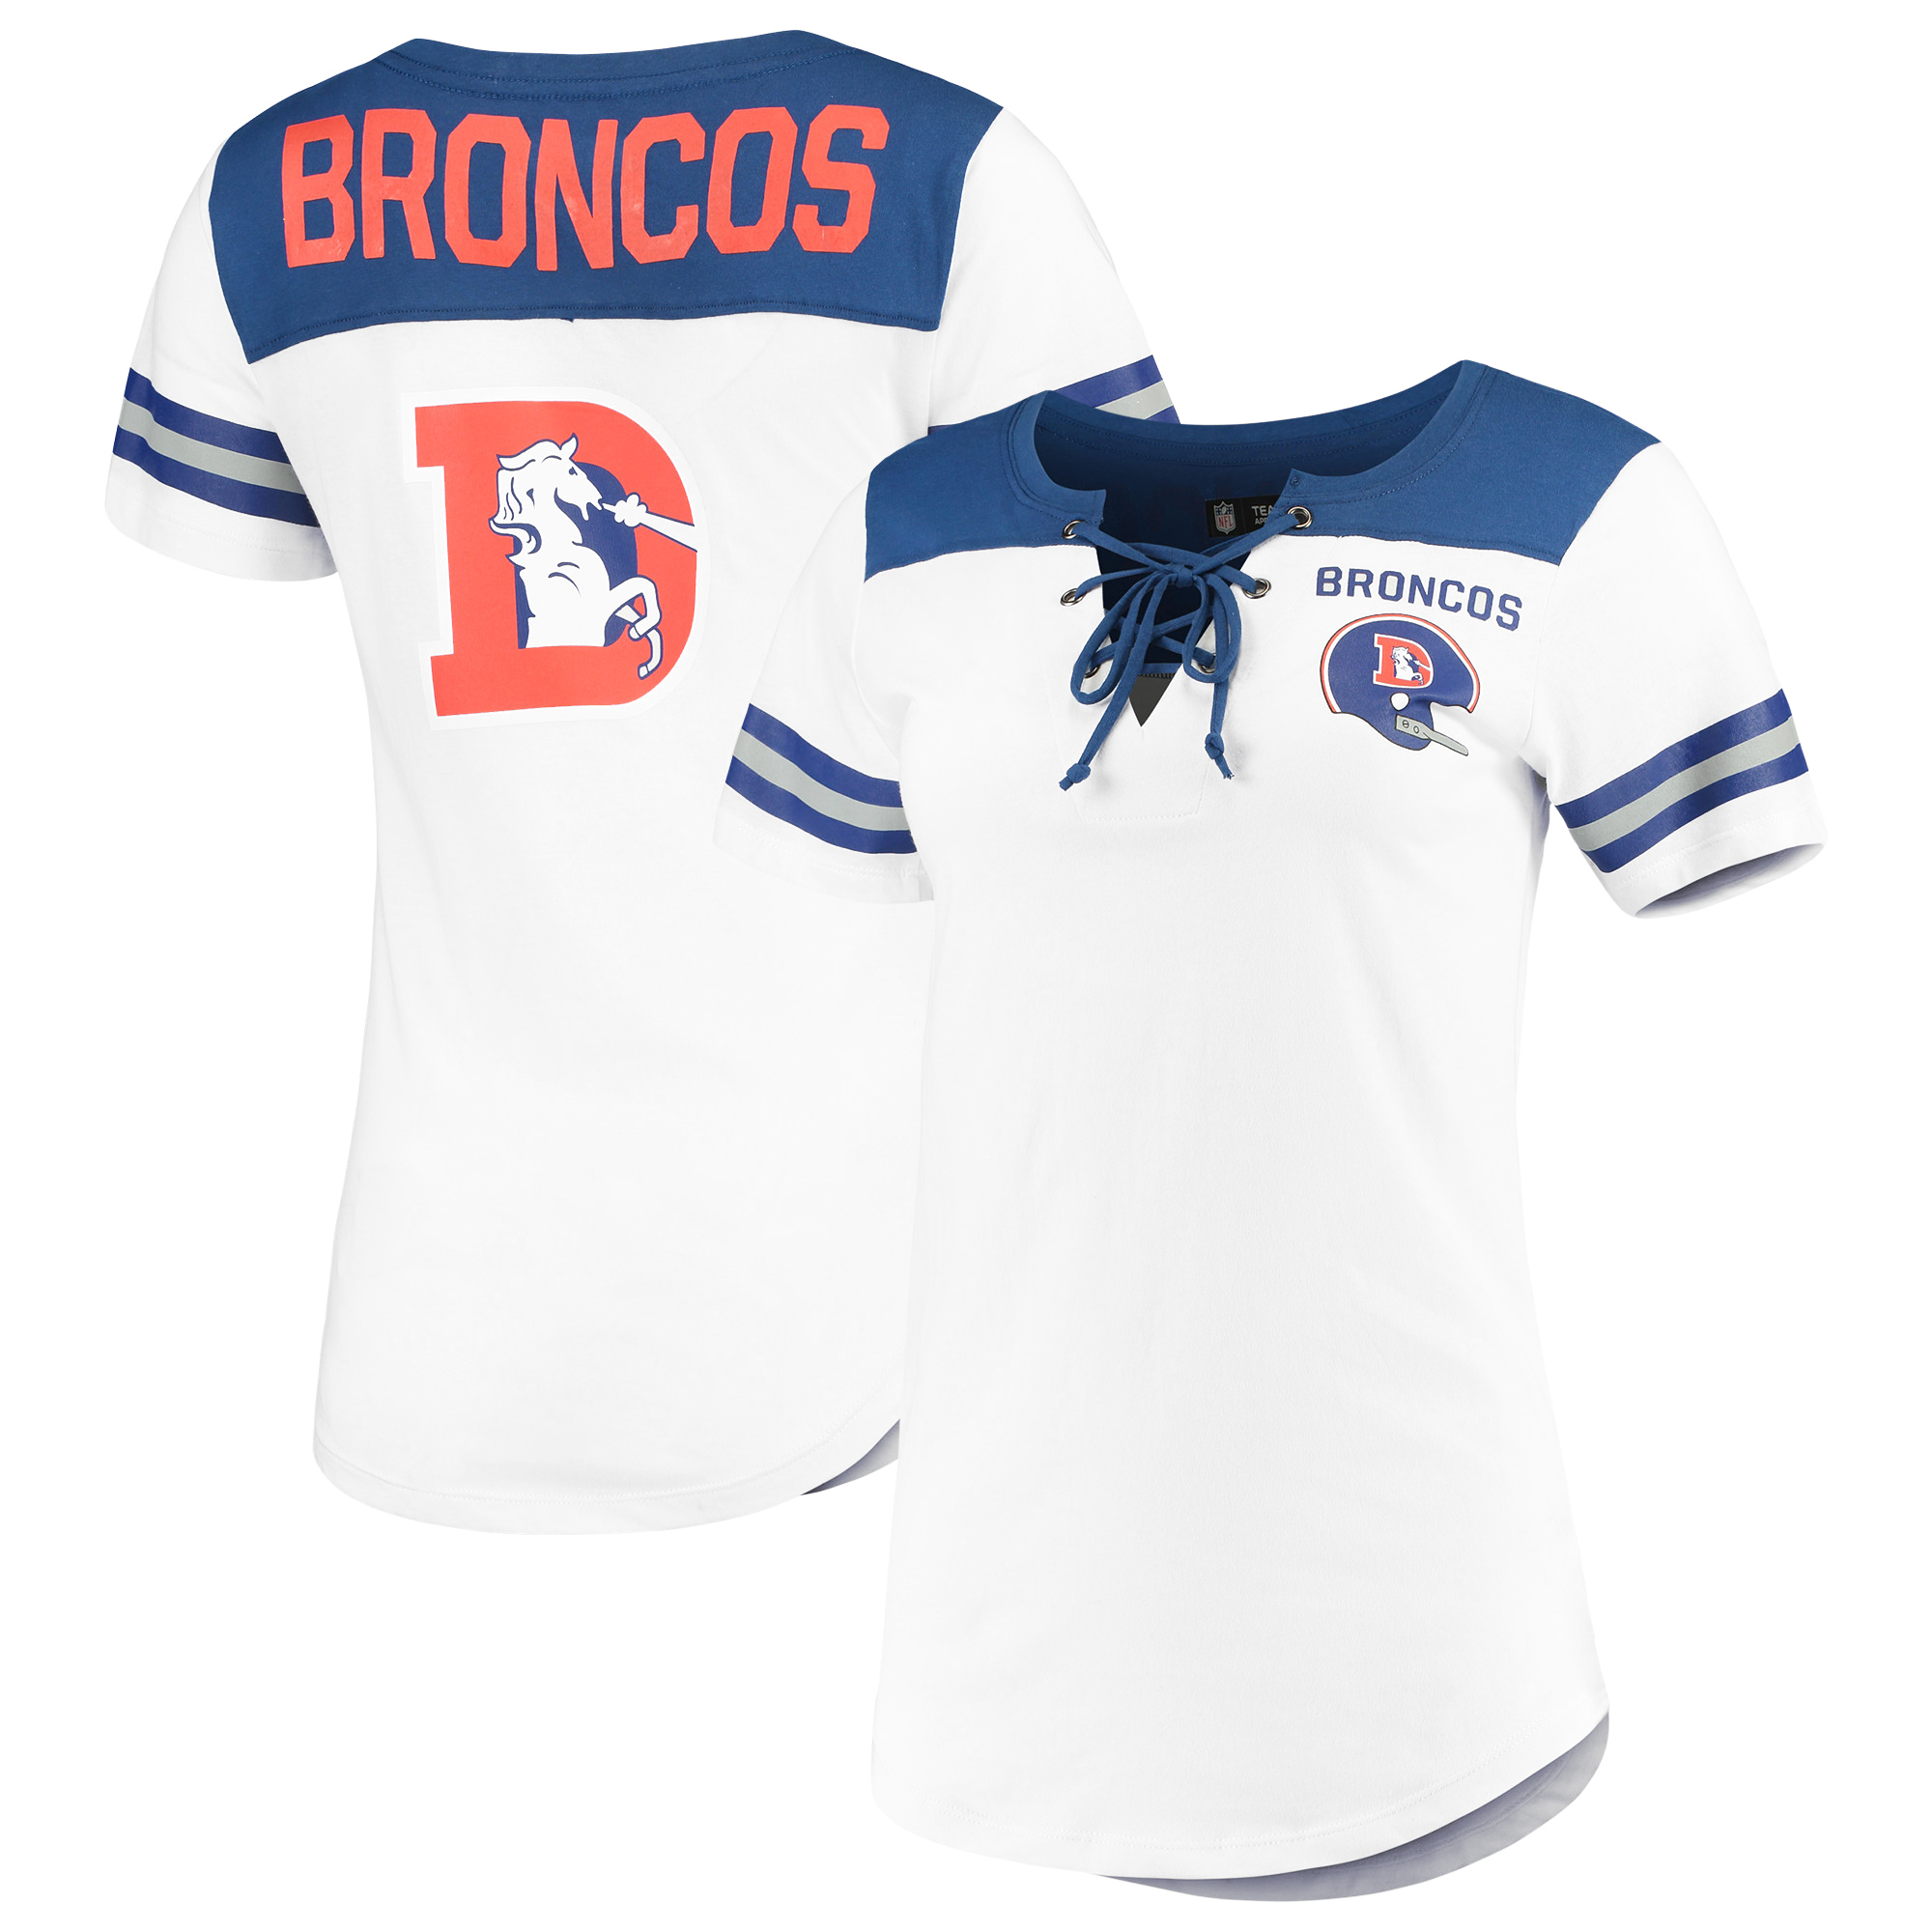 Denver Broncos New Era Women's Athletic Throwback Lace-Up T-Shirt - White/Royal - XL